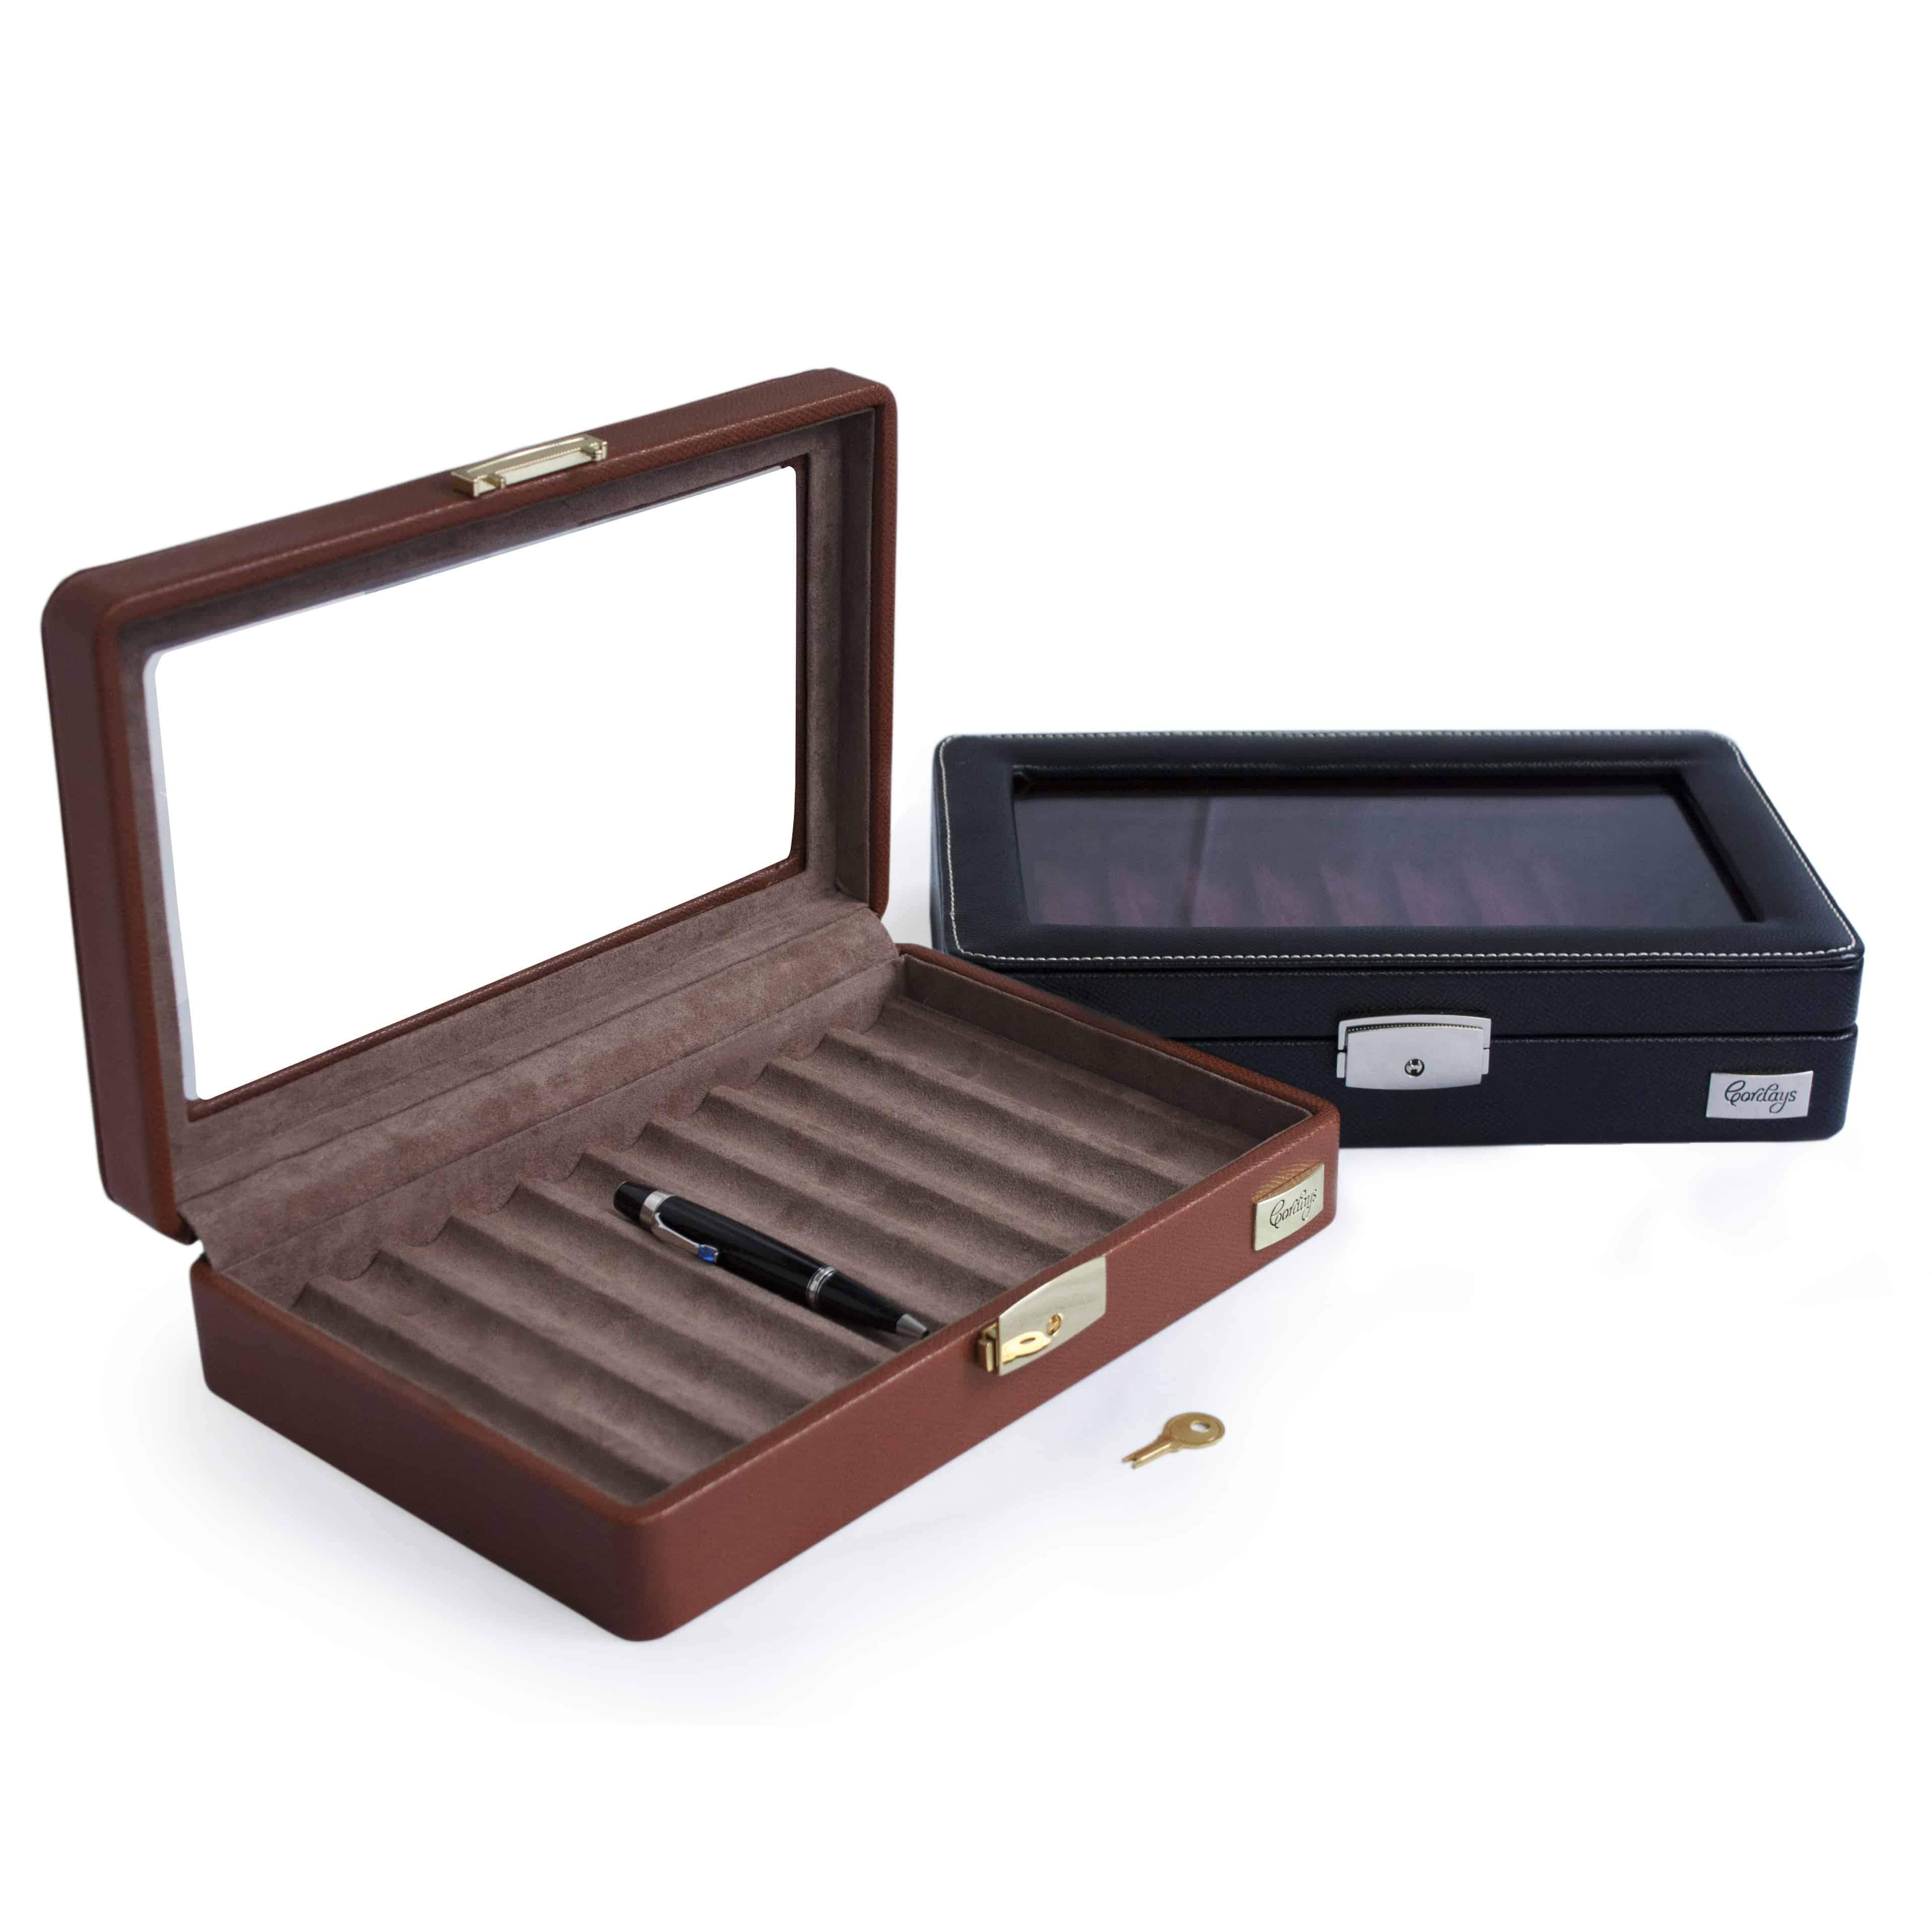 Pen Display Organiser Case with Top Glass Lid in Leatherette